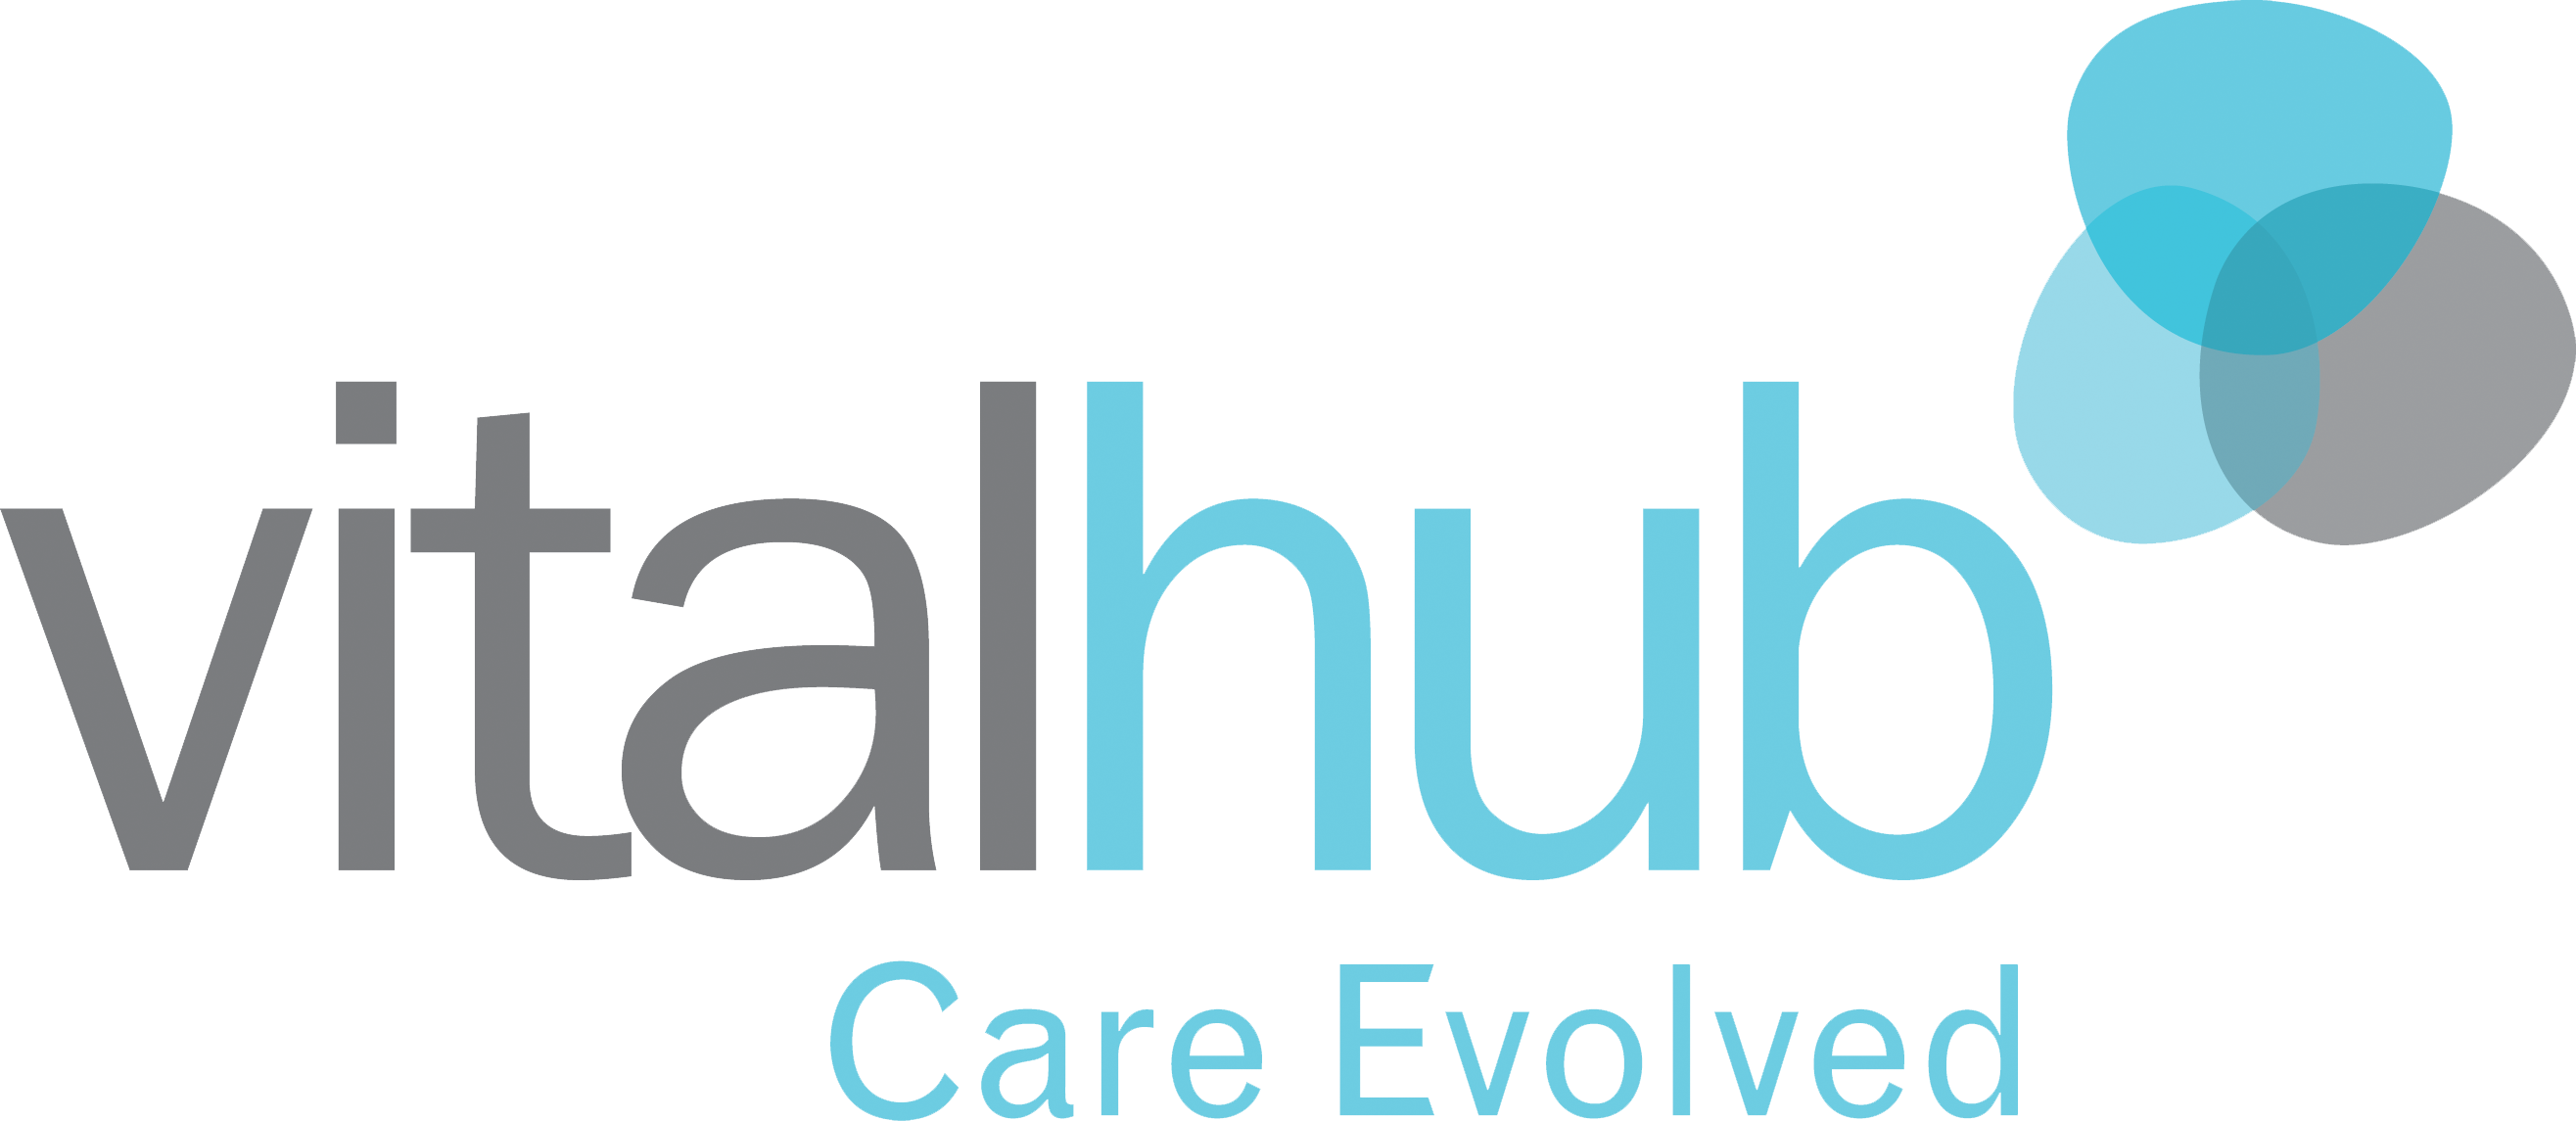 VitalHub Selected as One of Two Vendors to Provide Clinical Utilization Reviews Under NHS Framework